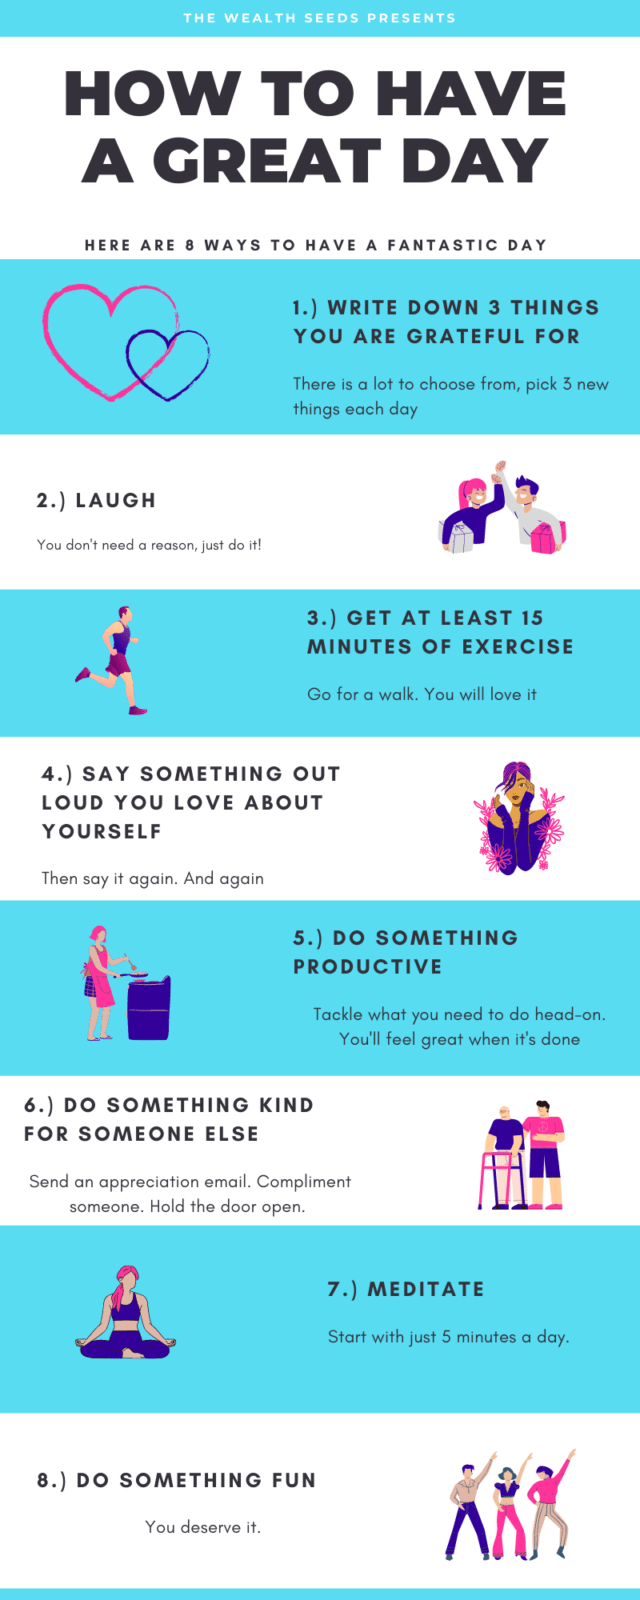 8 ways to have a great day.